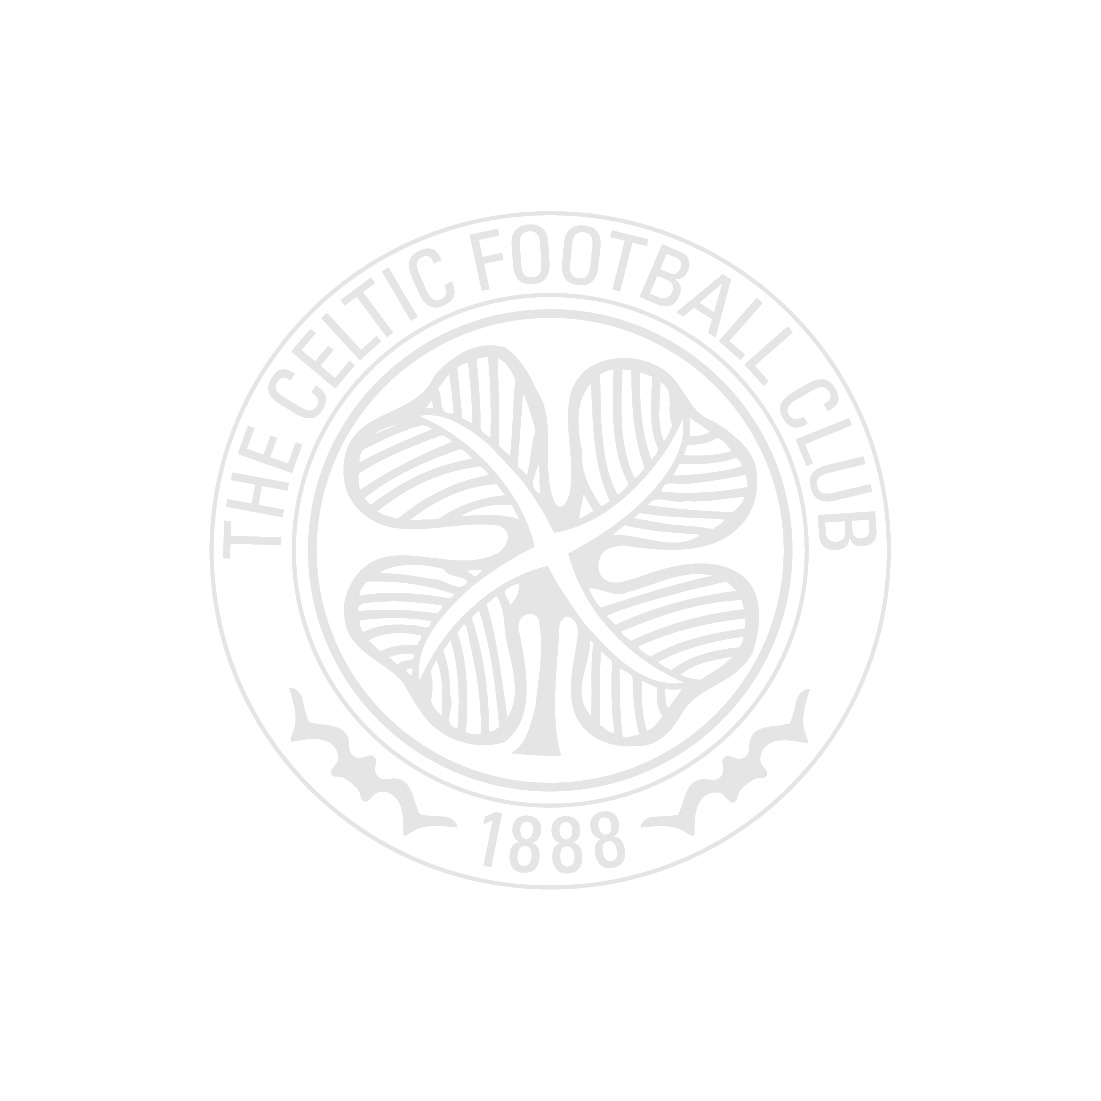 1988 Centenary Retro Celtic Jersey